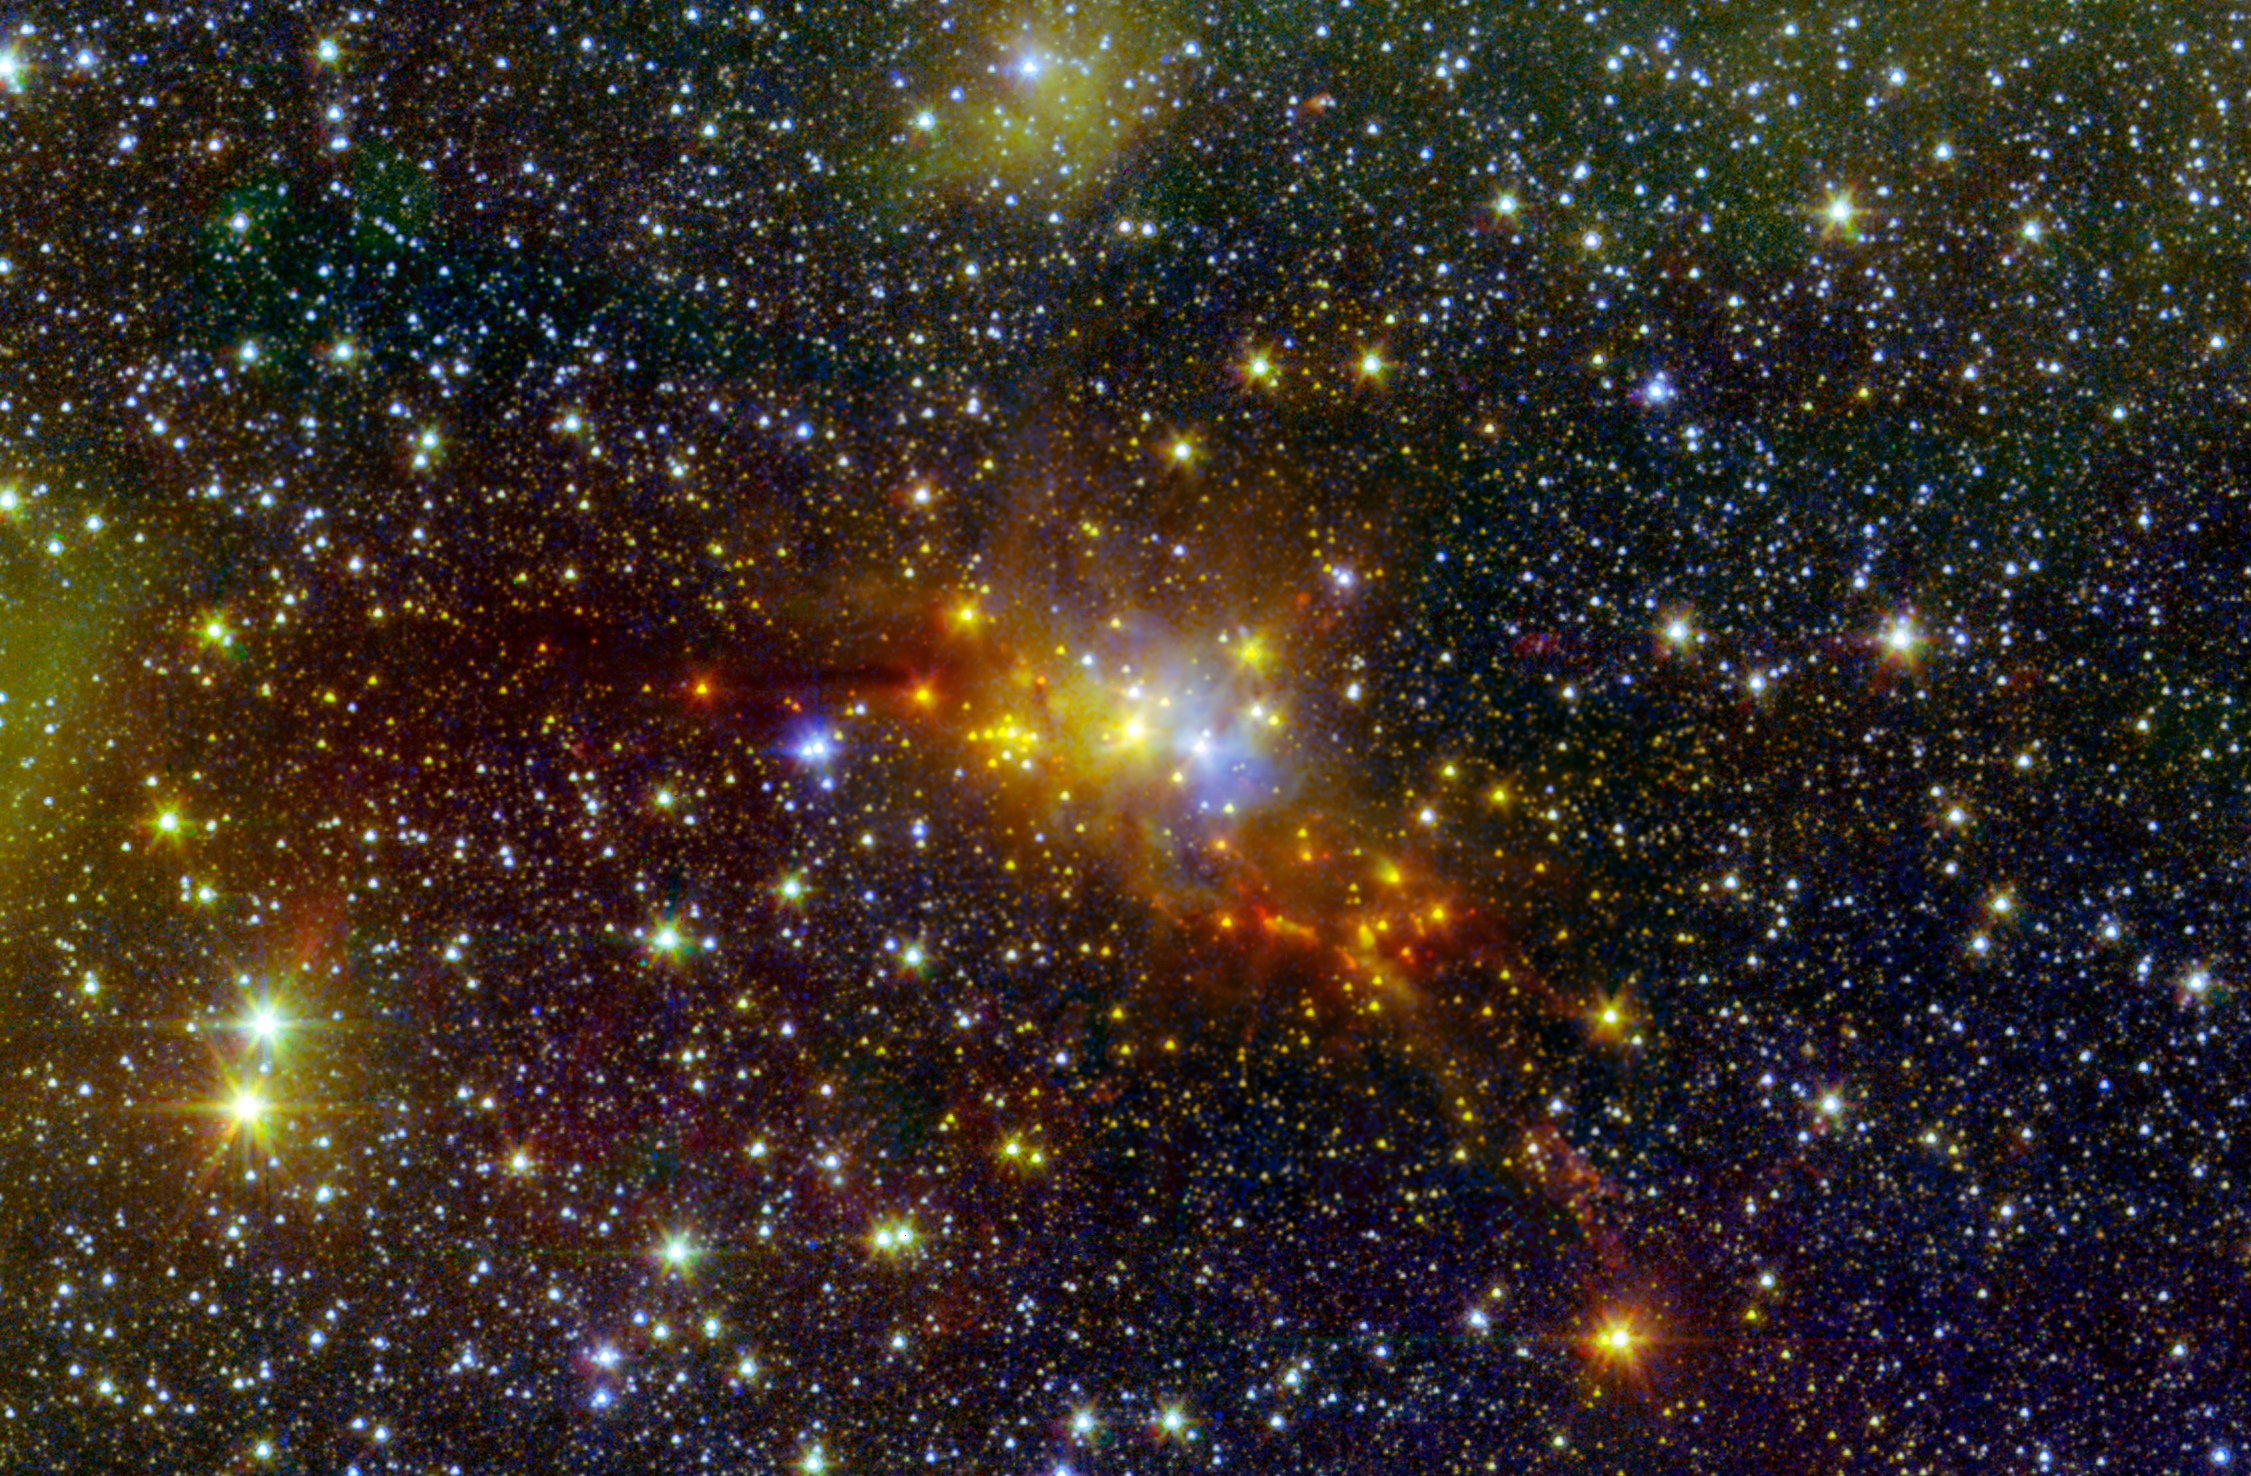 The 'Serpent' Star-forming Cloud Hatches New Stars | NASA